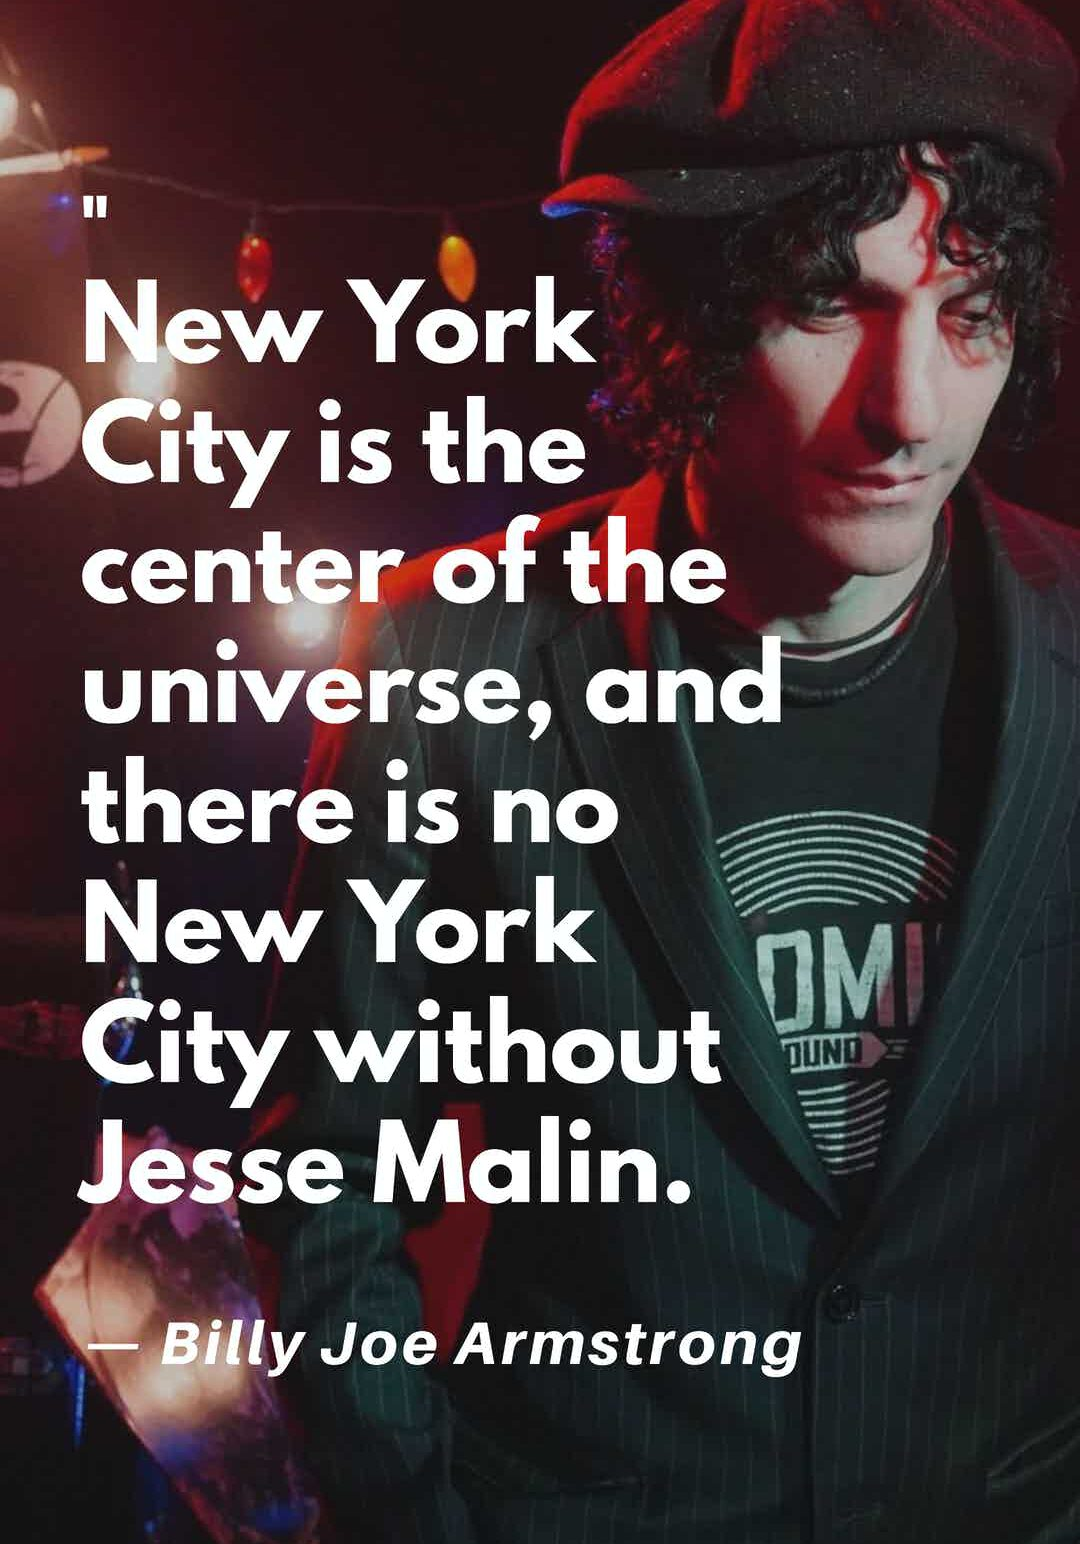 there is no new york city without jesse malin